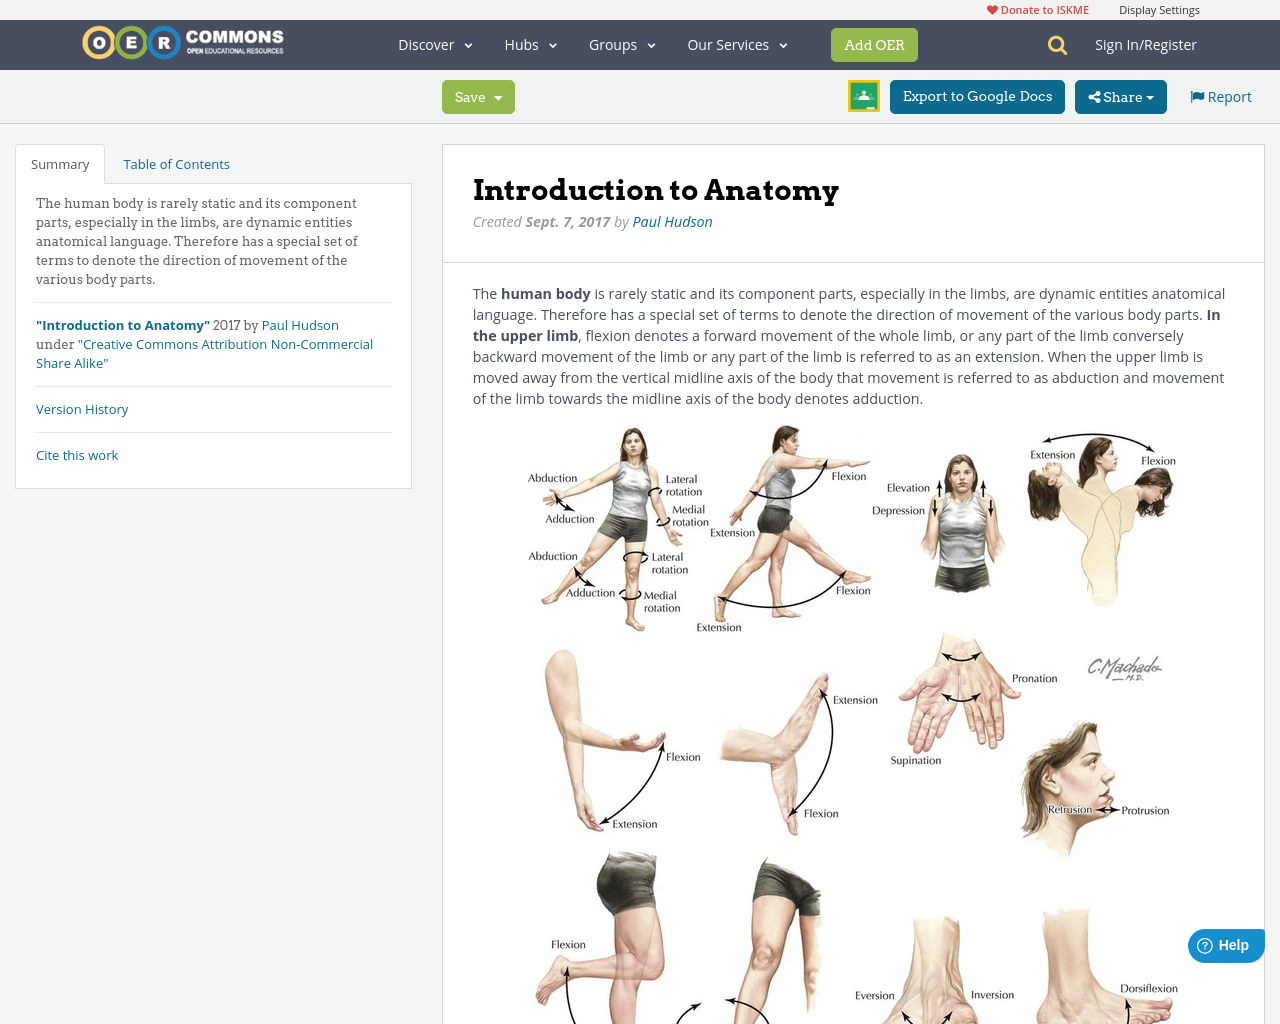 Introduction to Anatomy | OER Commons